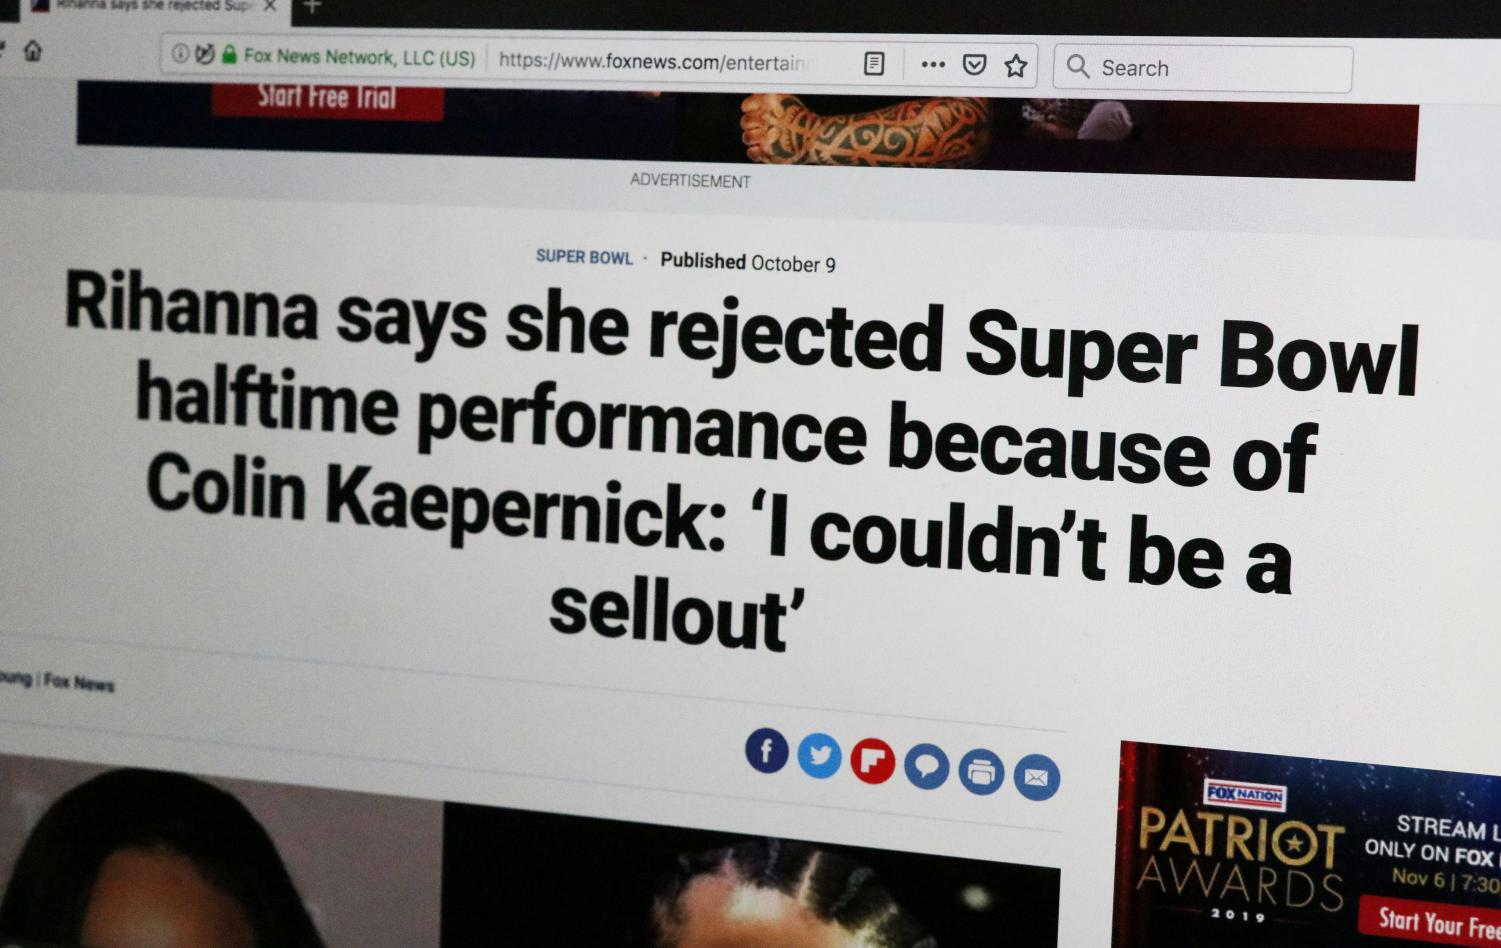 HALFTIME CONTROVERSY: Major artists like Rihanna still refuse to associate themselves with the NFL. Shakira and Jennifer Lopez are set to headline the 2020 Super Bowl, but the NFL has yet to separate it's image from the Colin Kapernick situation, and the debate continues to this day.